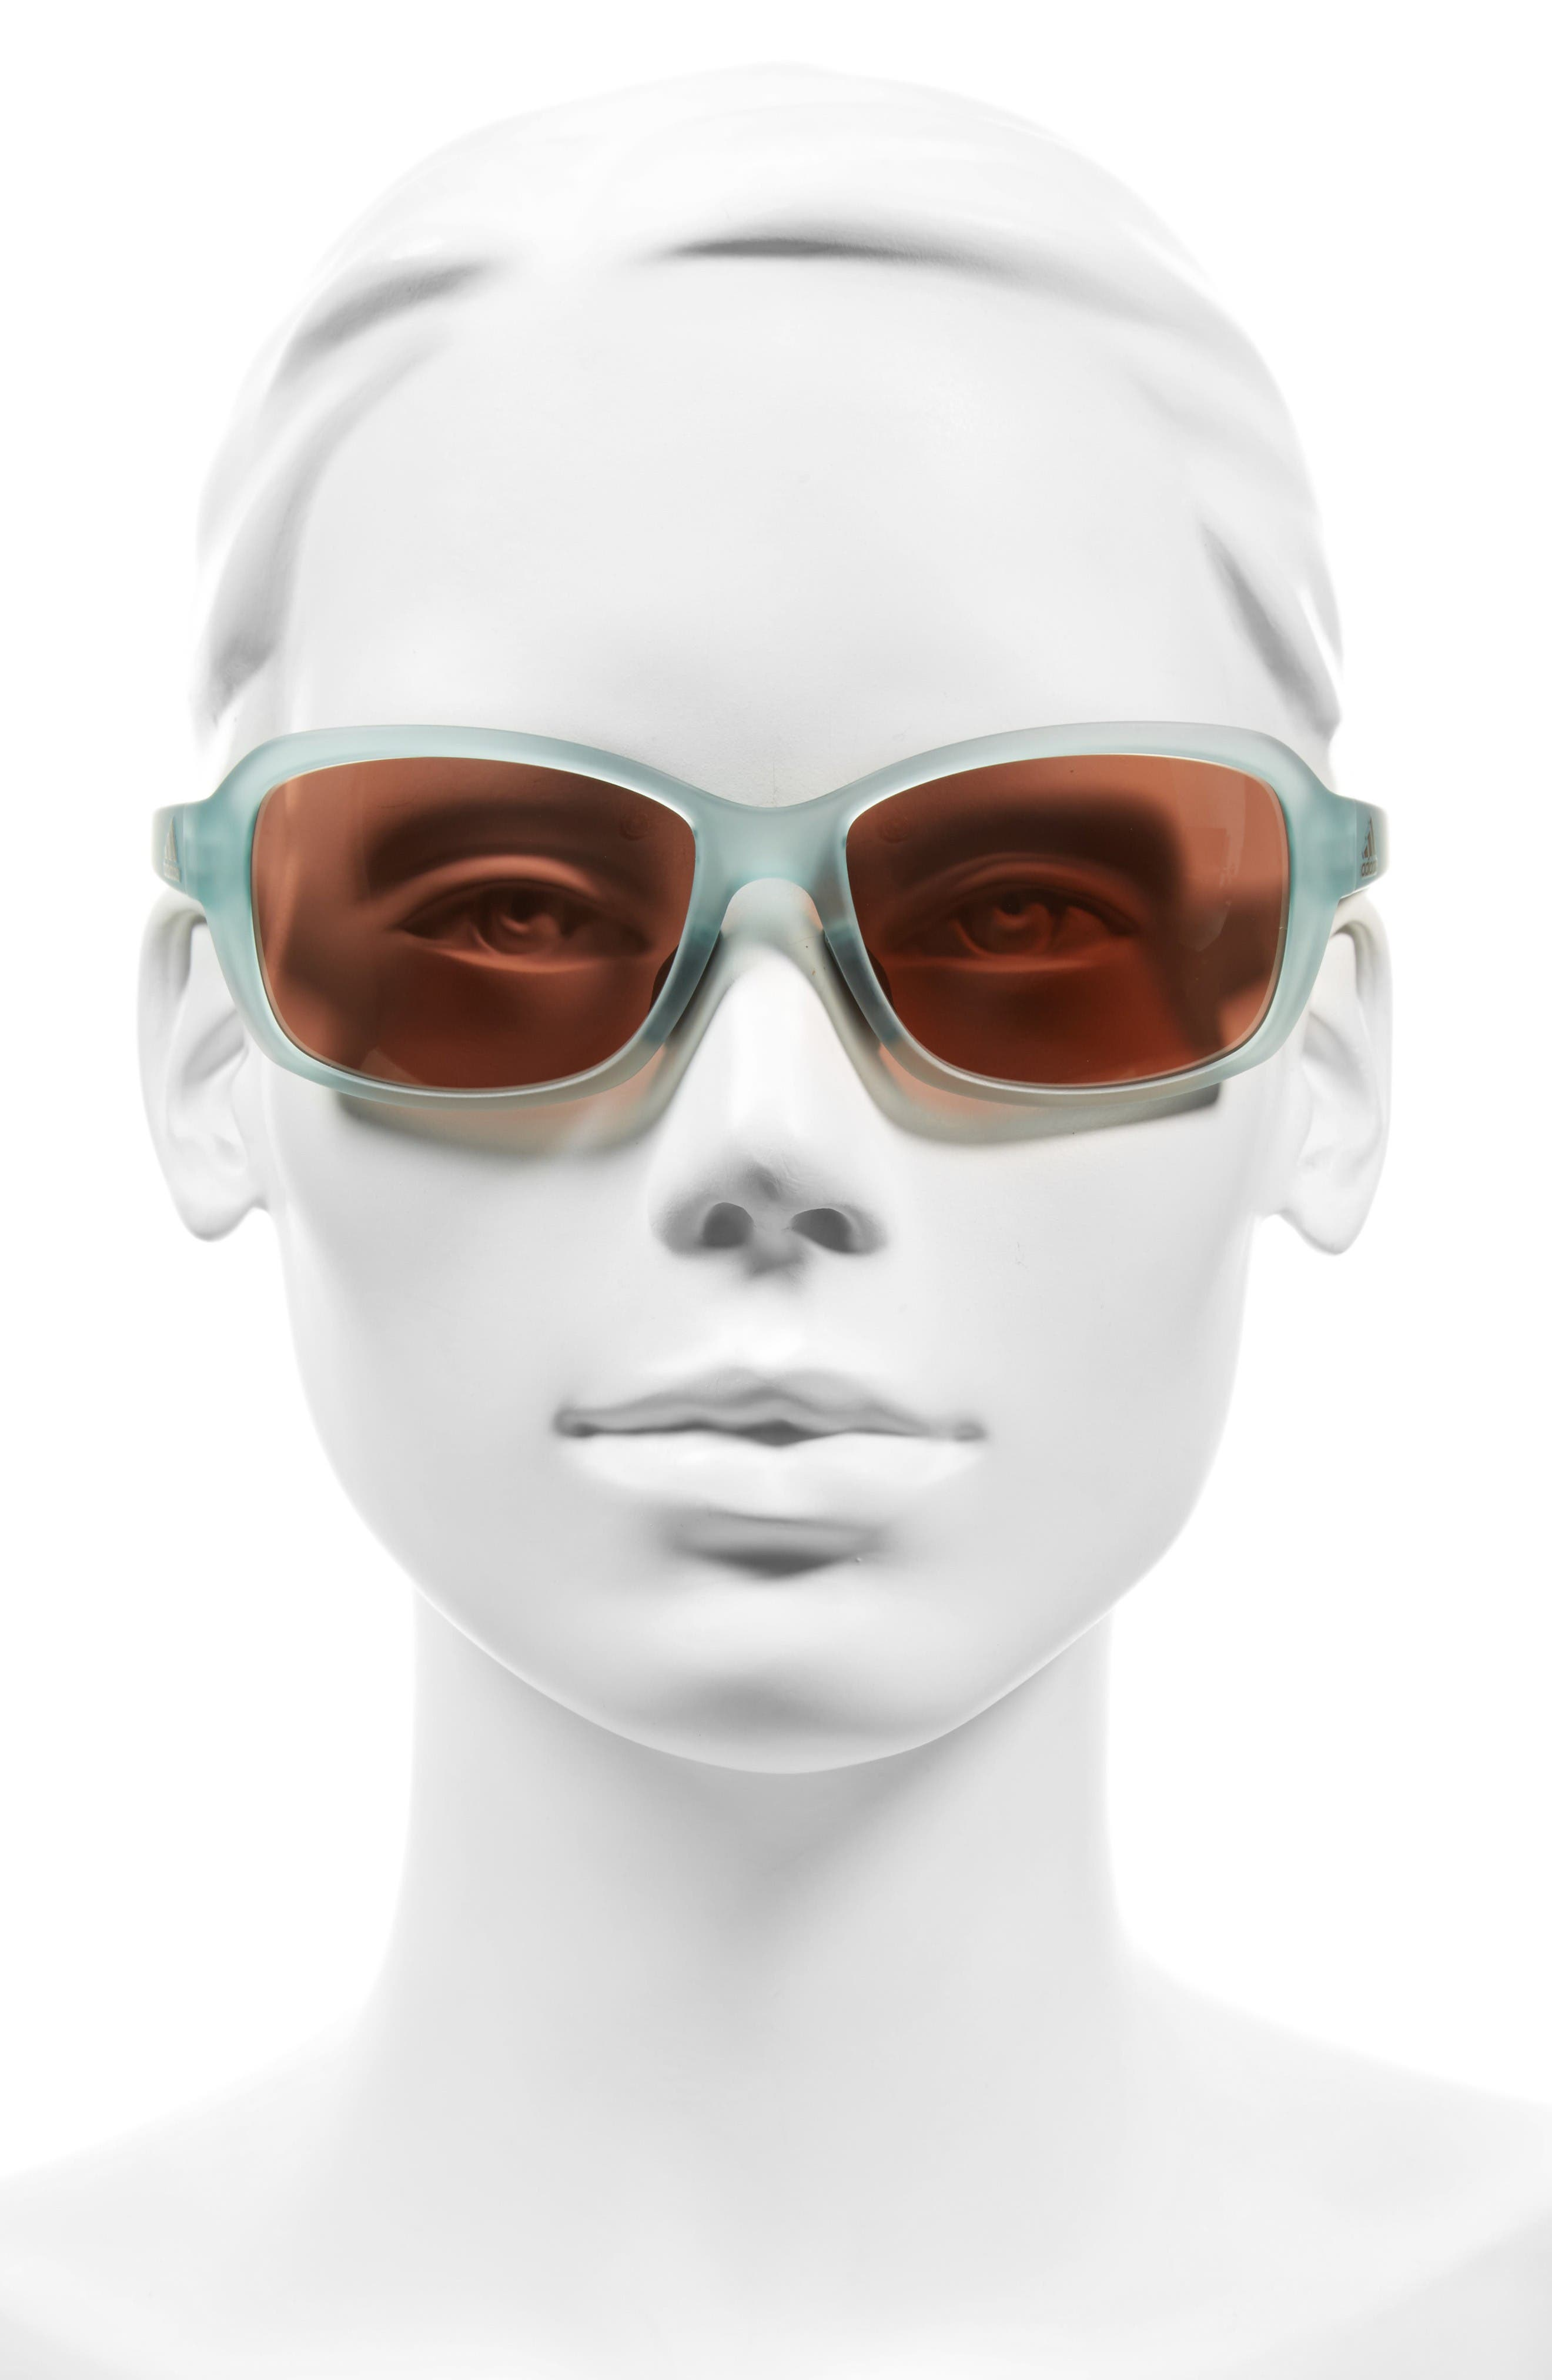 Baboa 58mm Sunglasses,                             Alternate thumbnail 2, color,                             Mint Green/ Taupe